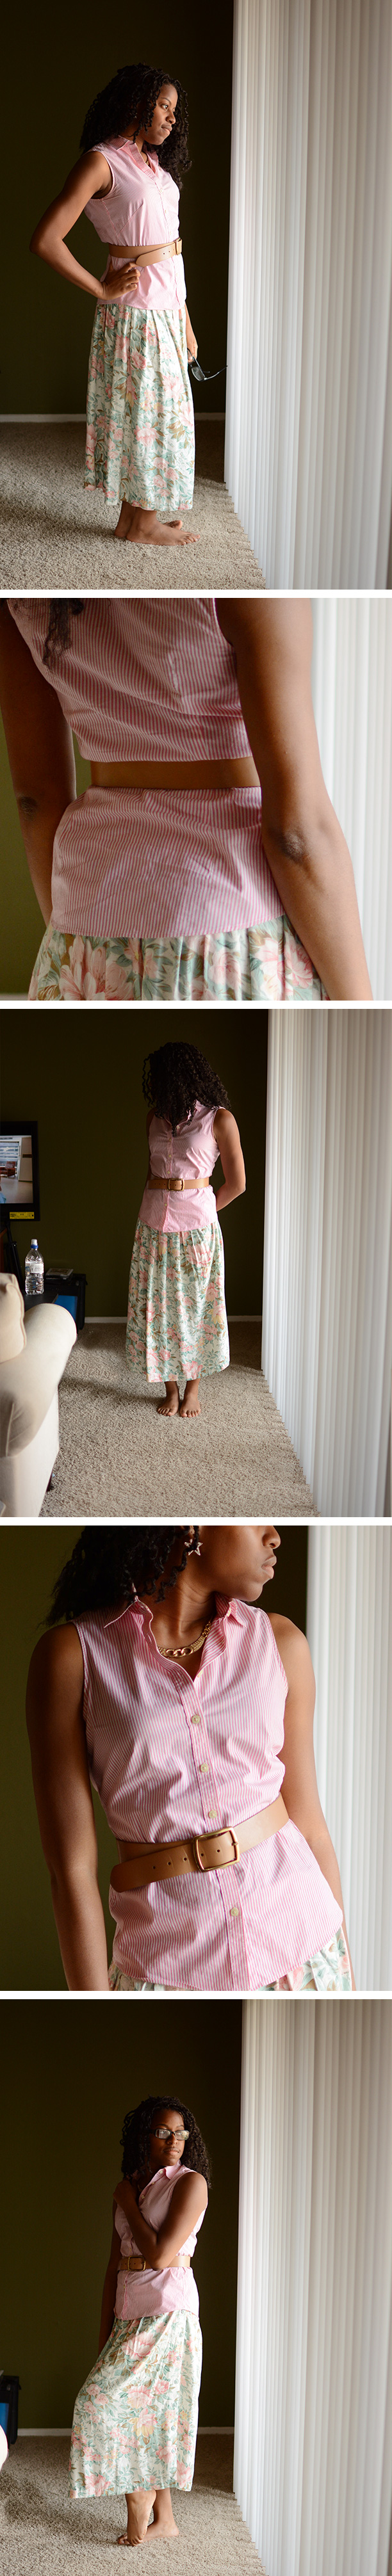 My Friend Elle's pink stripes and floral skirt OOTD